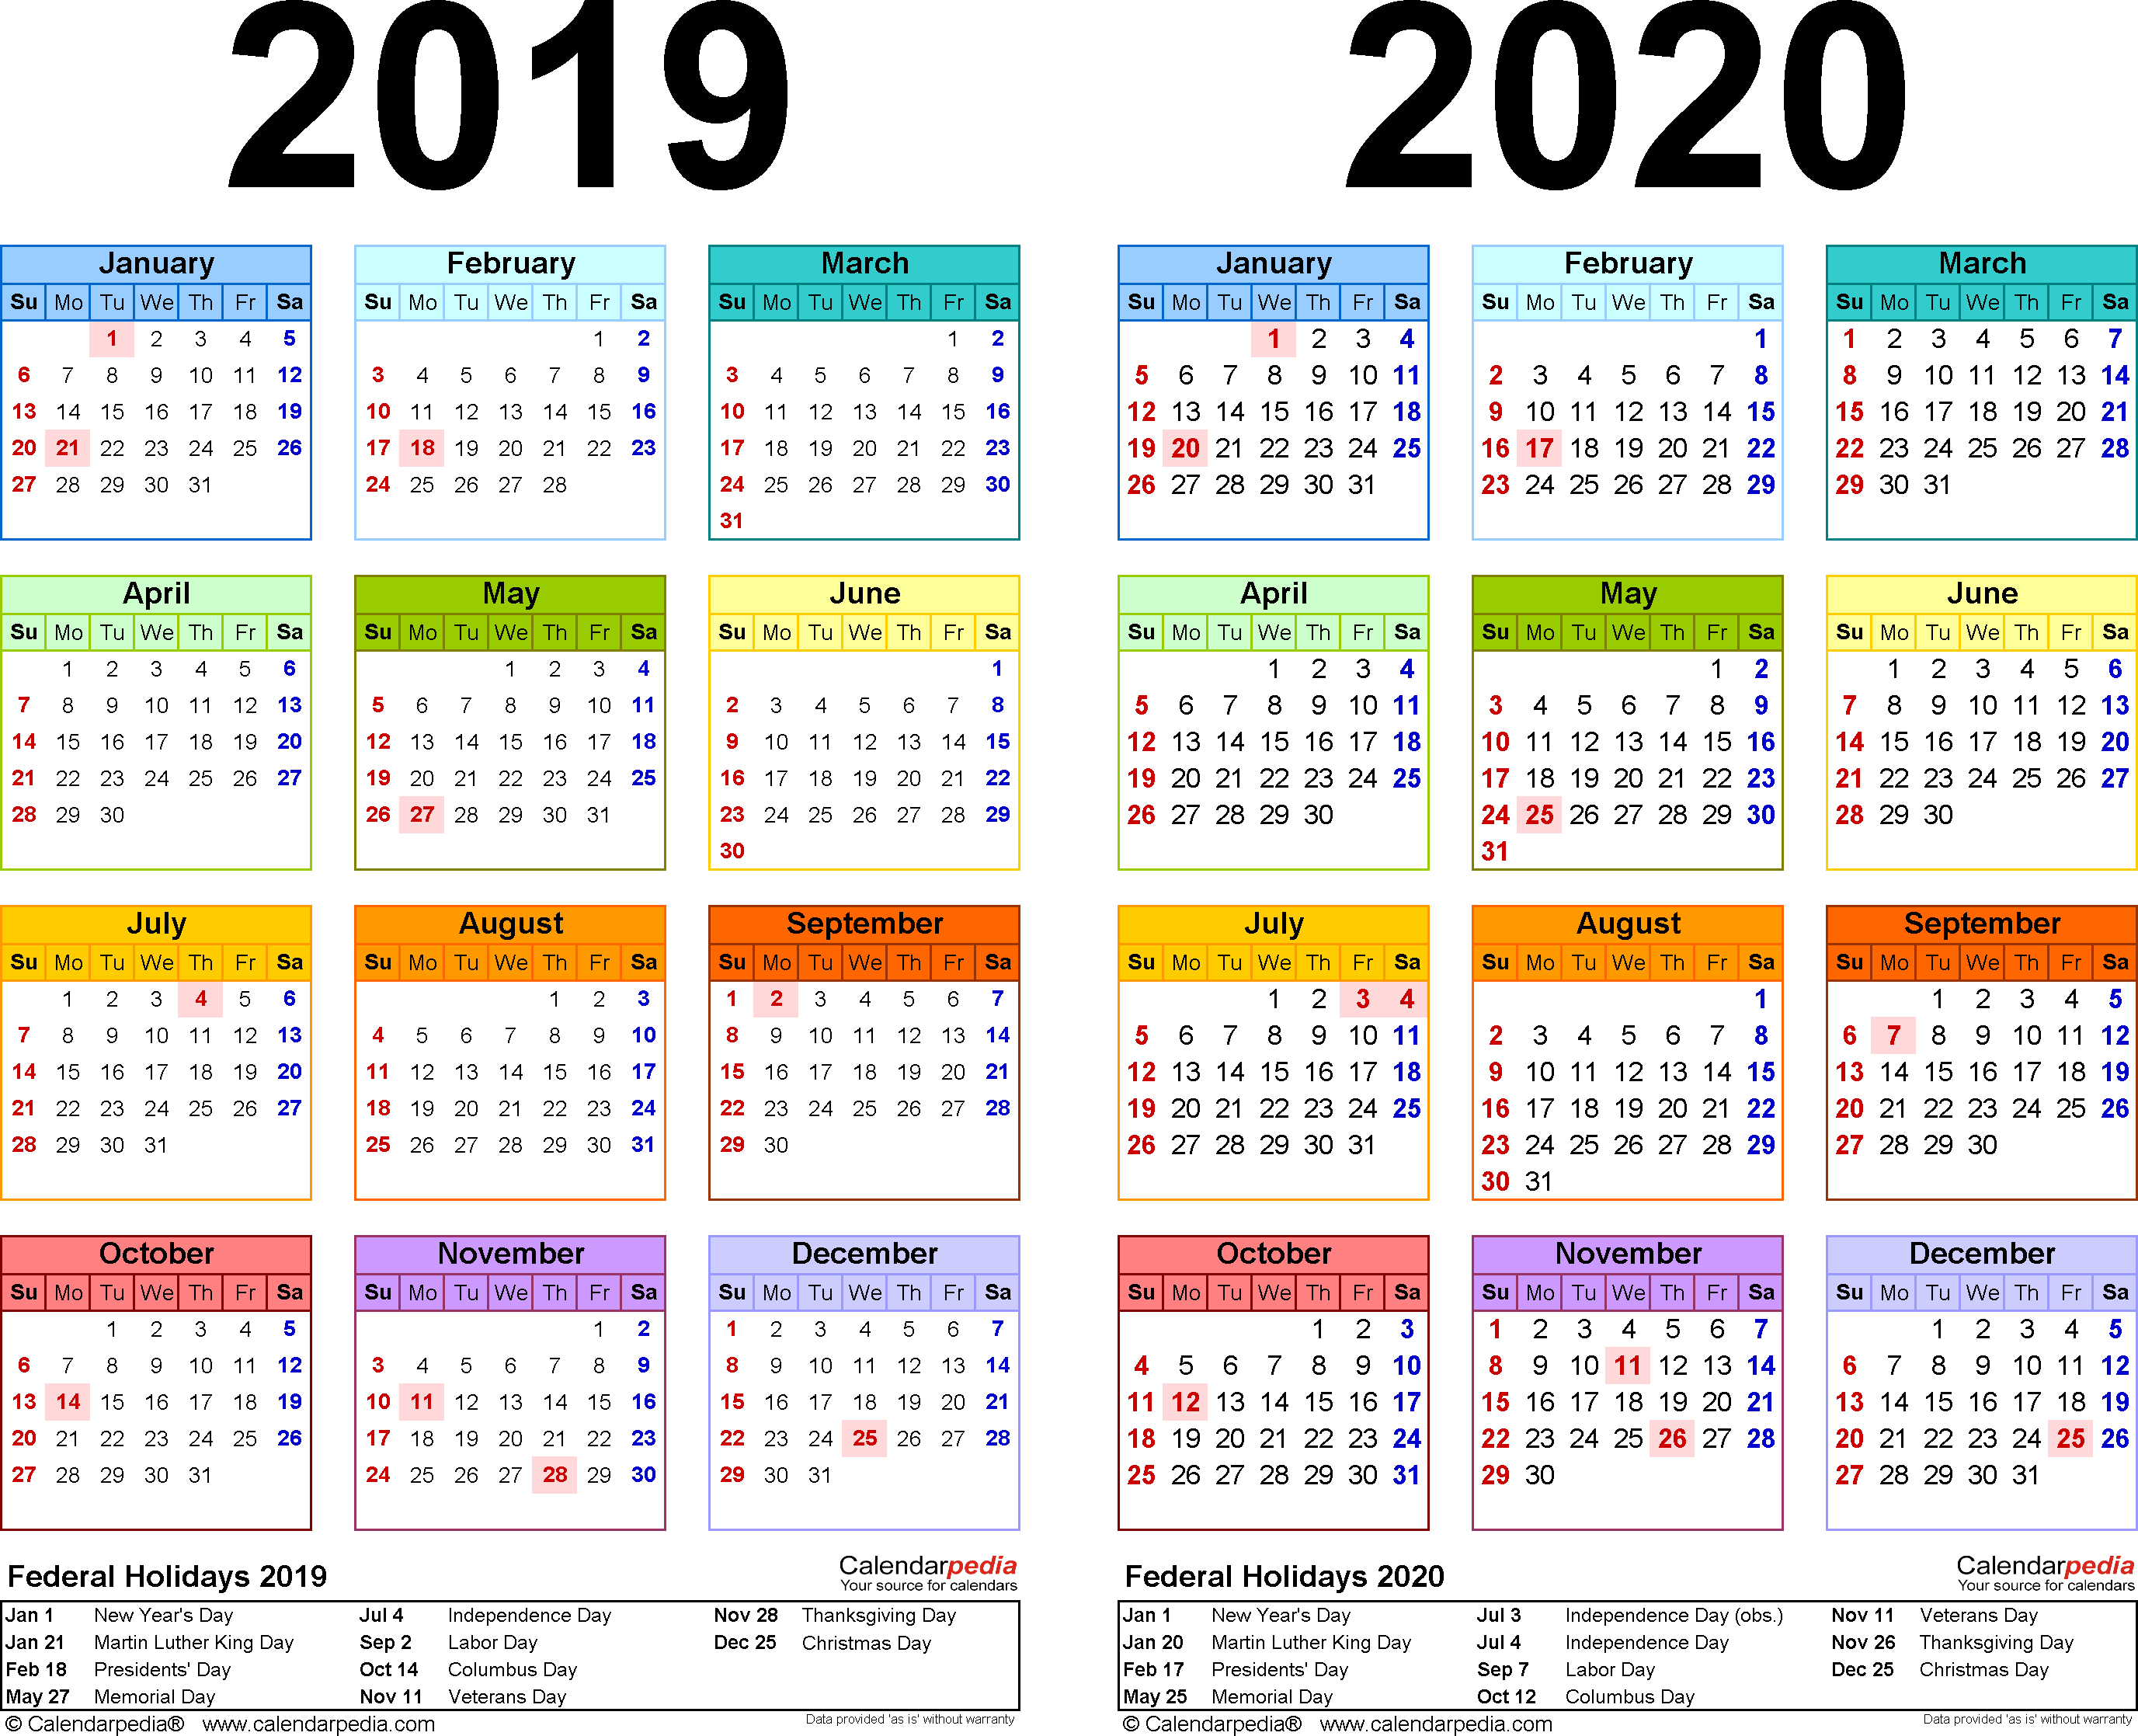 2019-2020 Calendar - Free Printable Two-Year Word Calendars intended for Printable Calendar 2019 2020 Write On